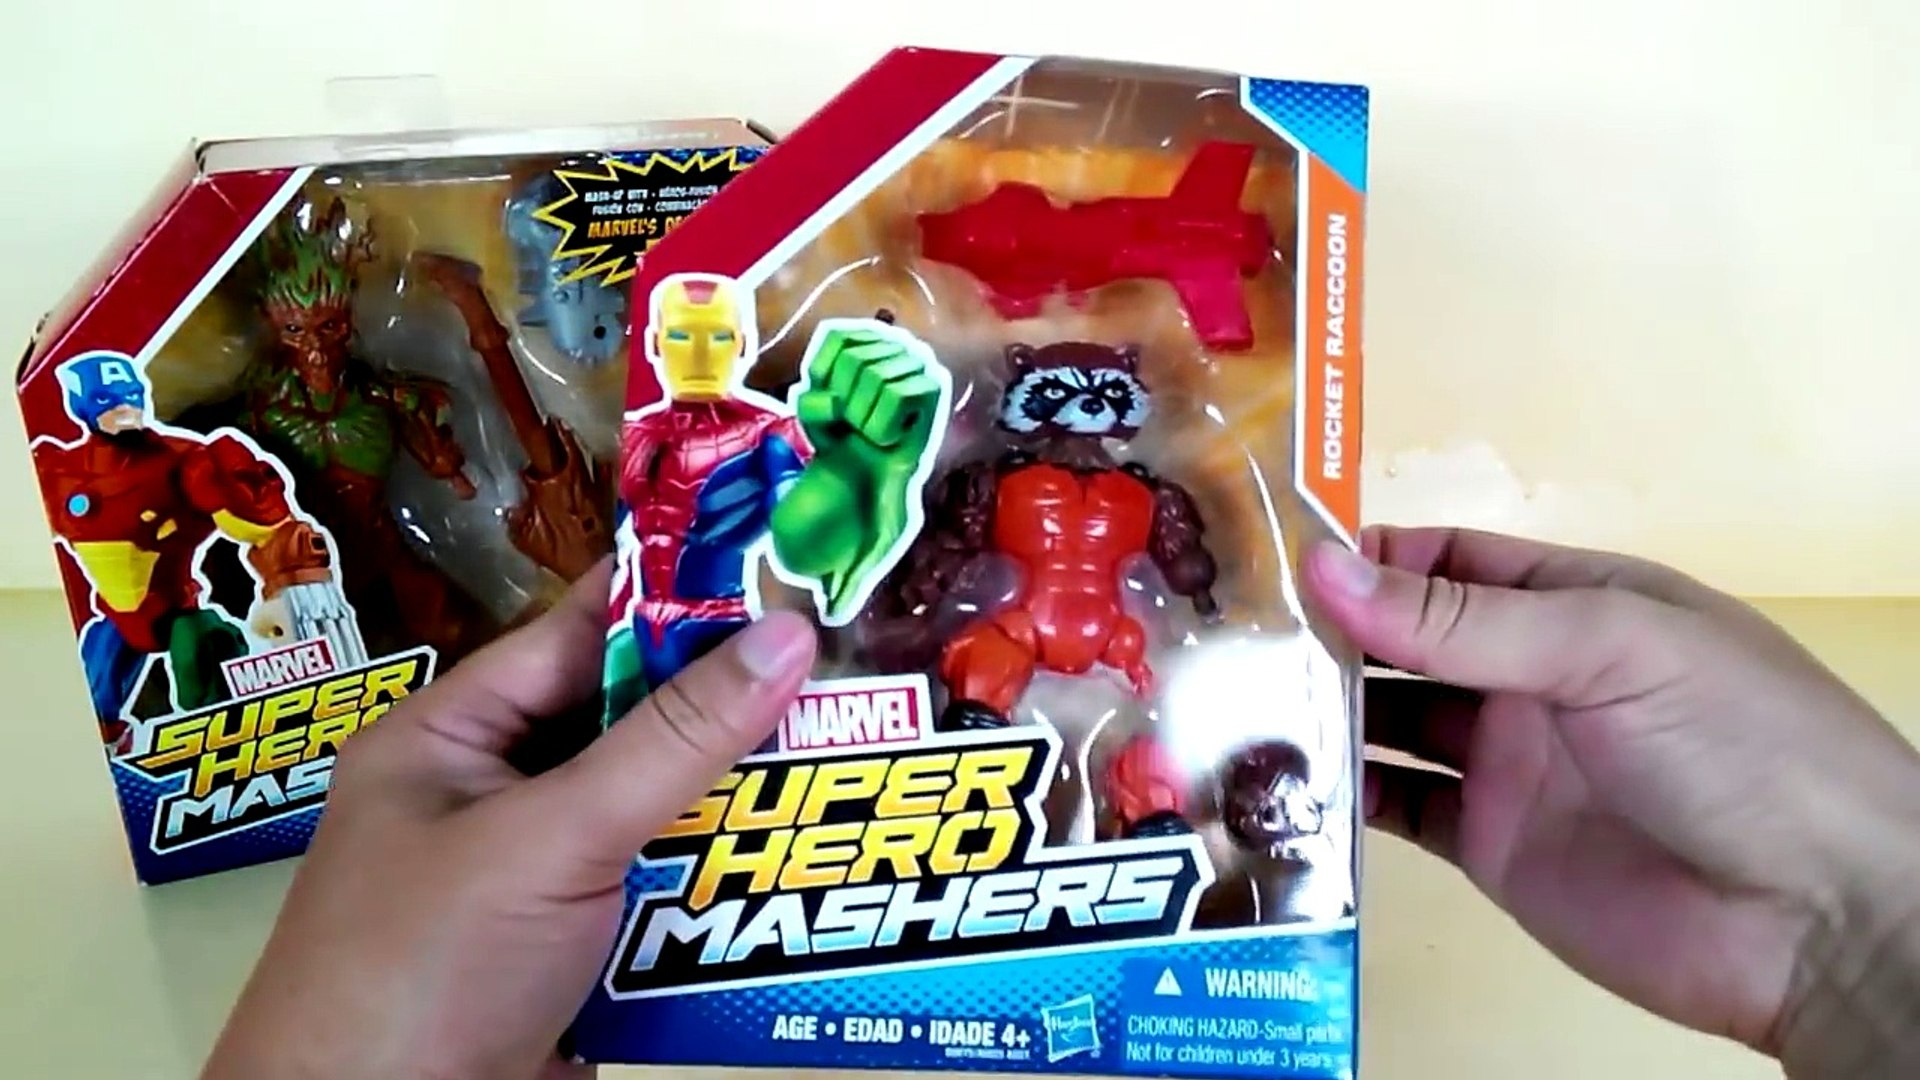 Marvel Super Hero Mashers Guardians Of The Galaxy Peter Quill AKA Star Lord and Rocket Rac